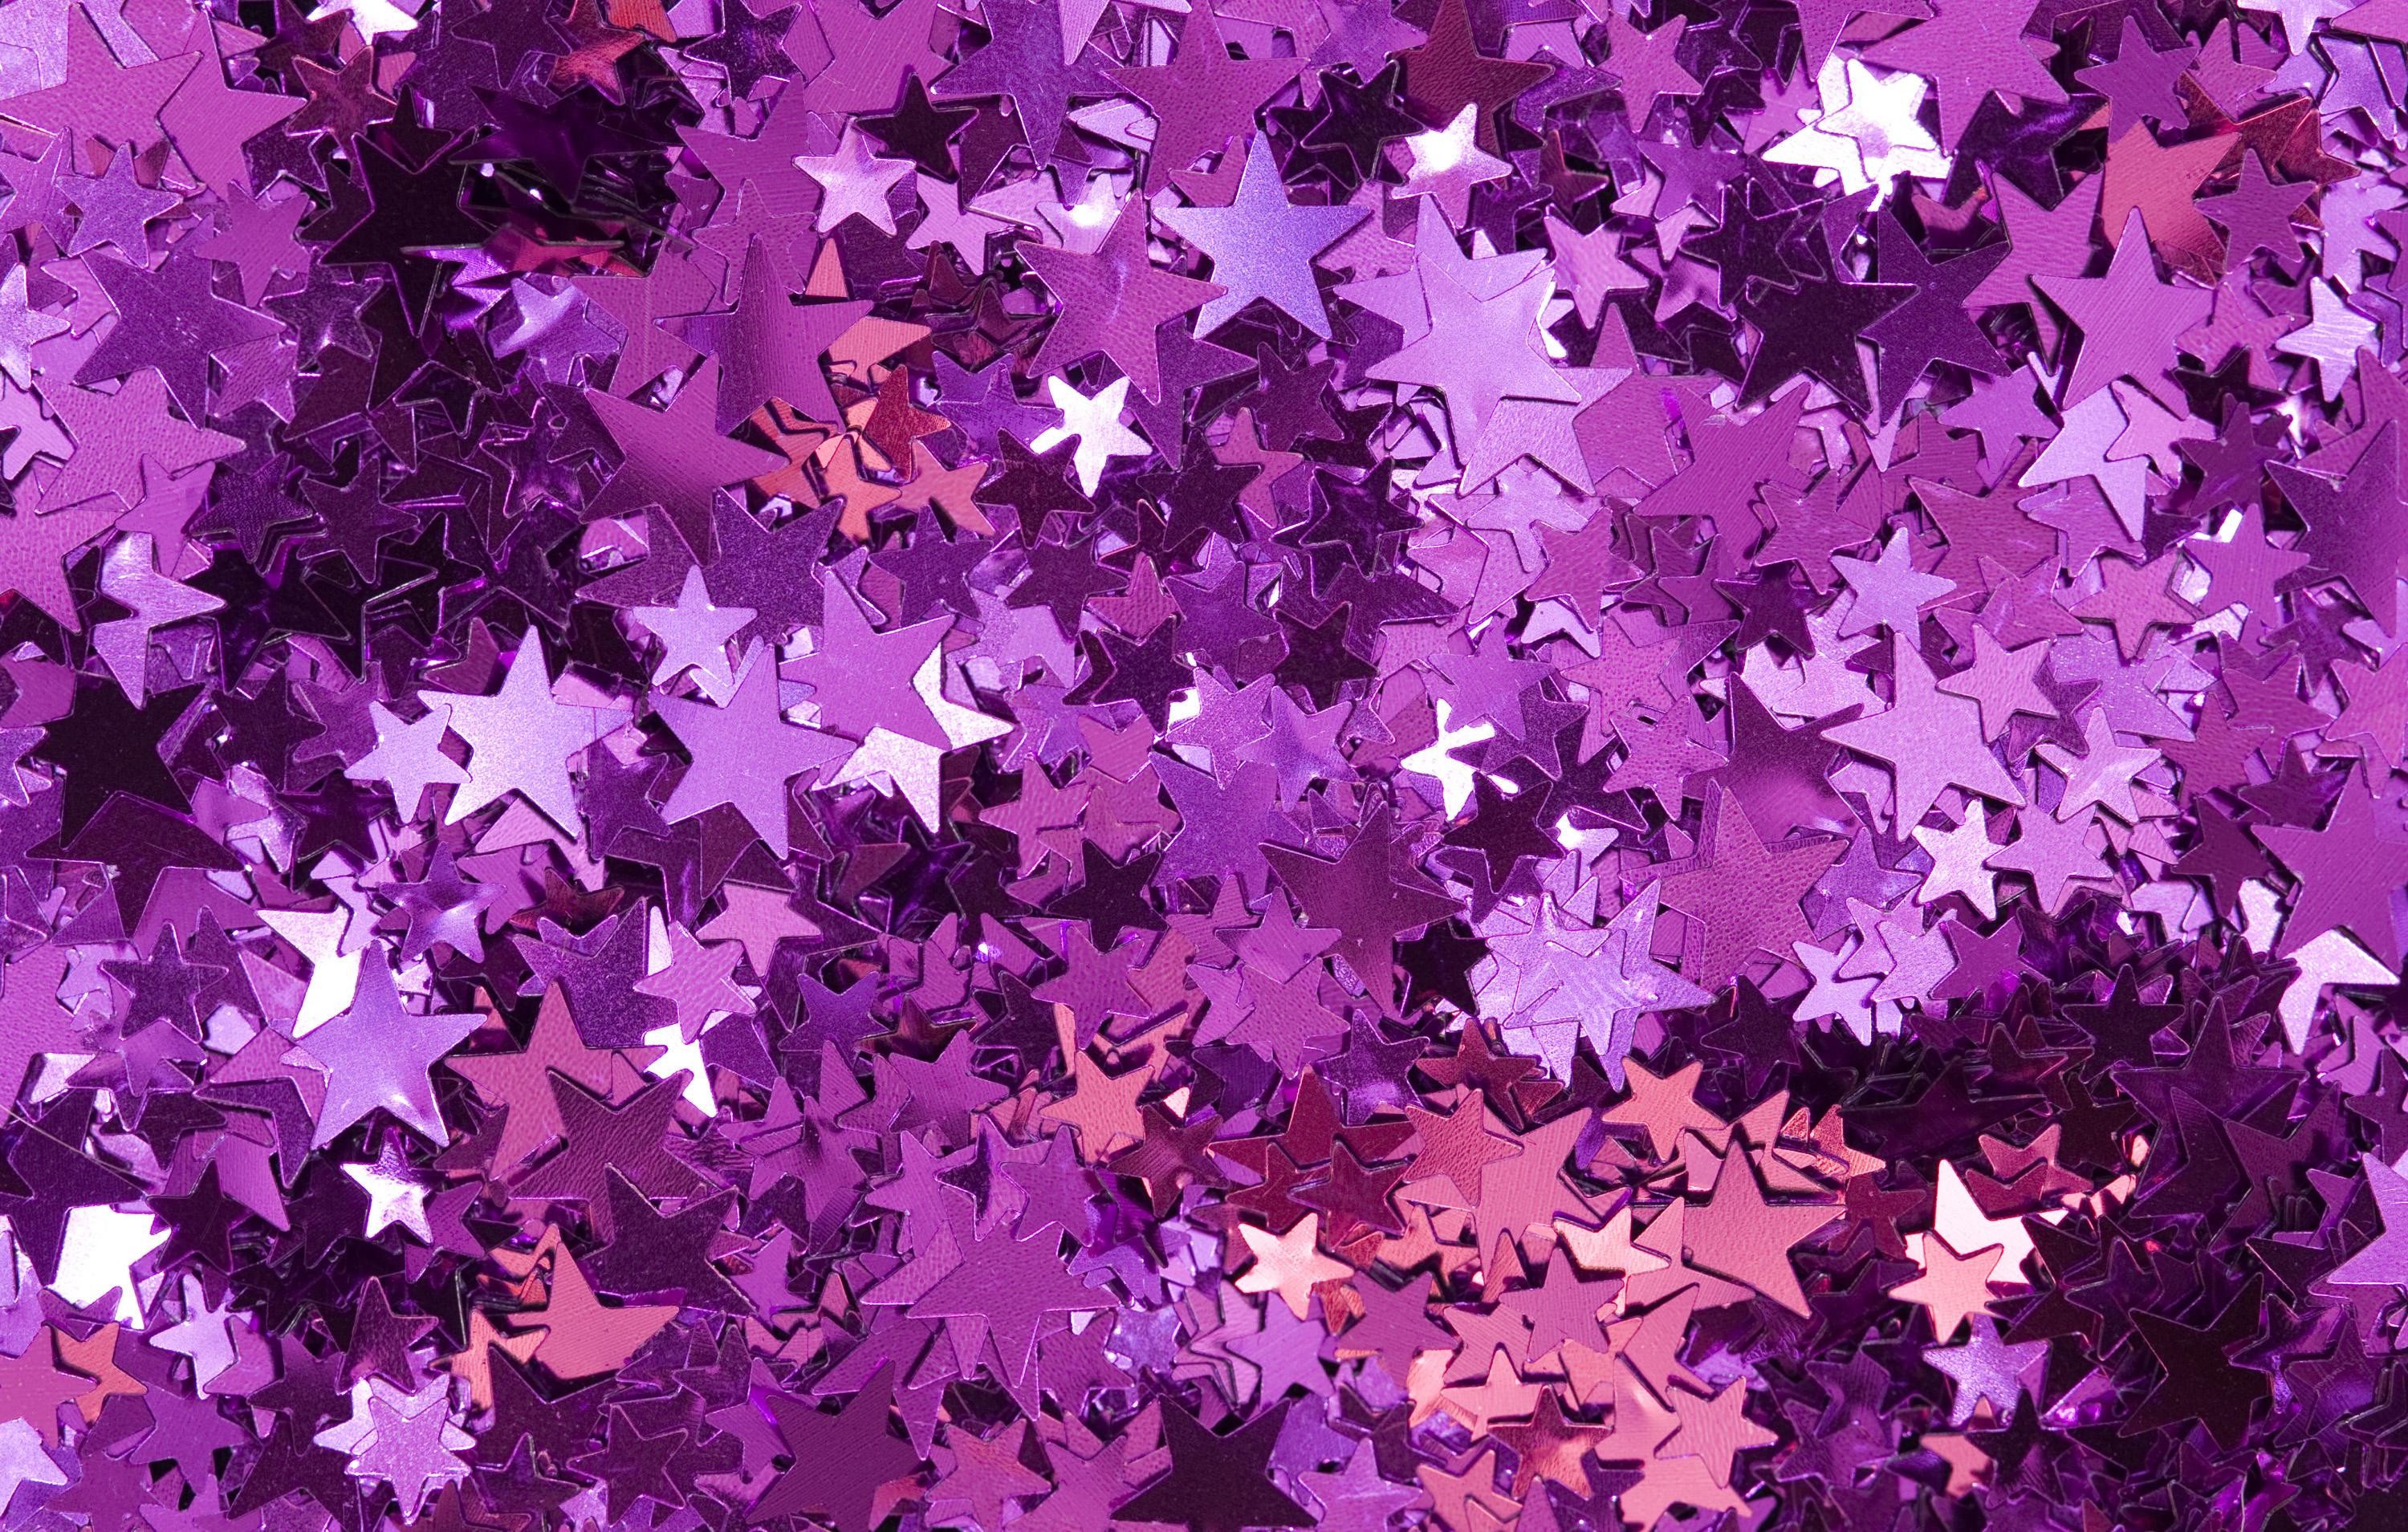 Free stock photo 3623 metallic star background freeimageslive a colorful pink backdrop of metallic confetti star shapes altavistaventures Gallery